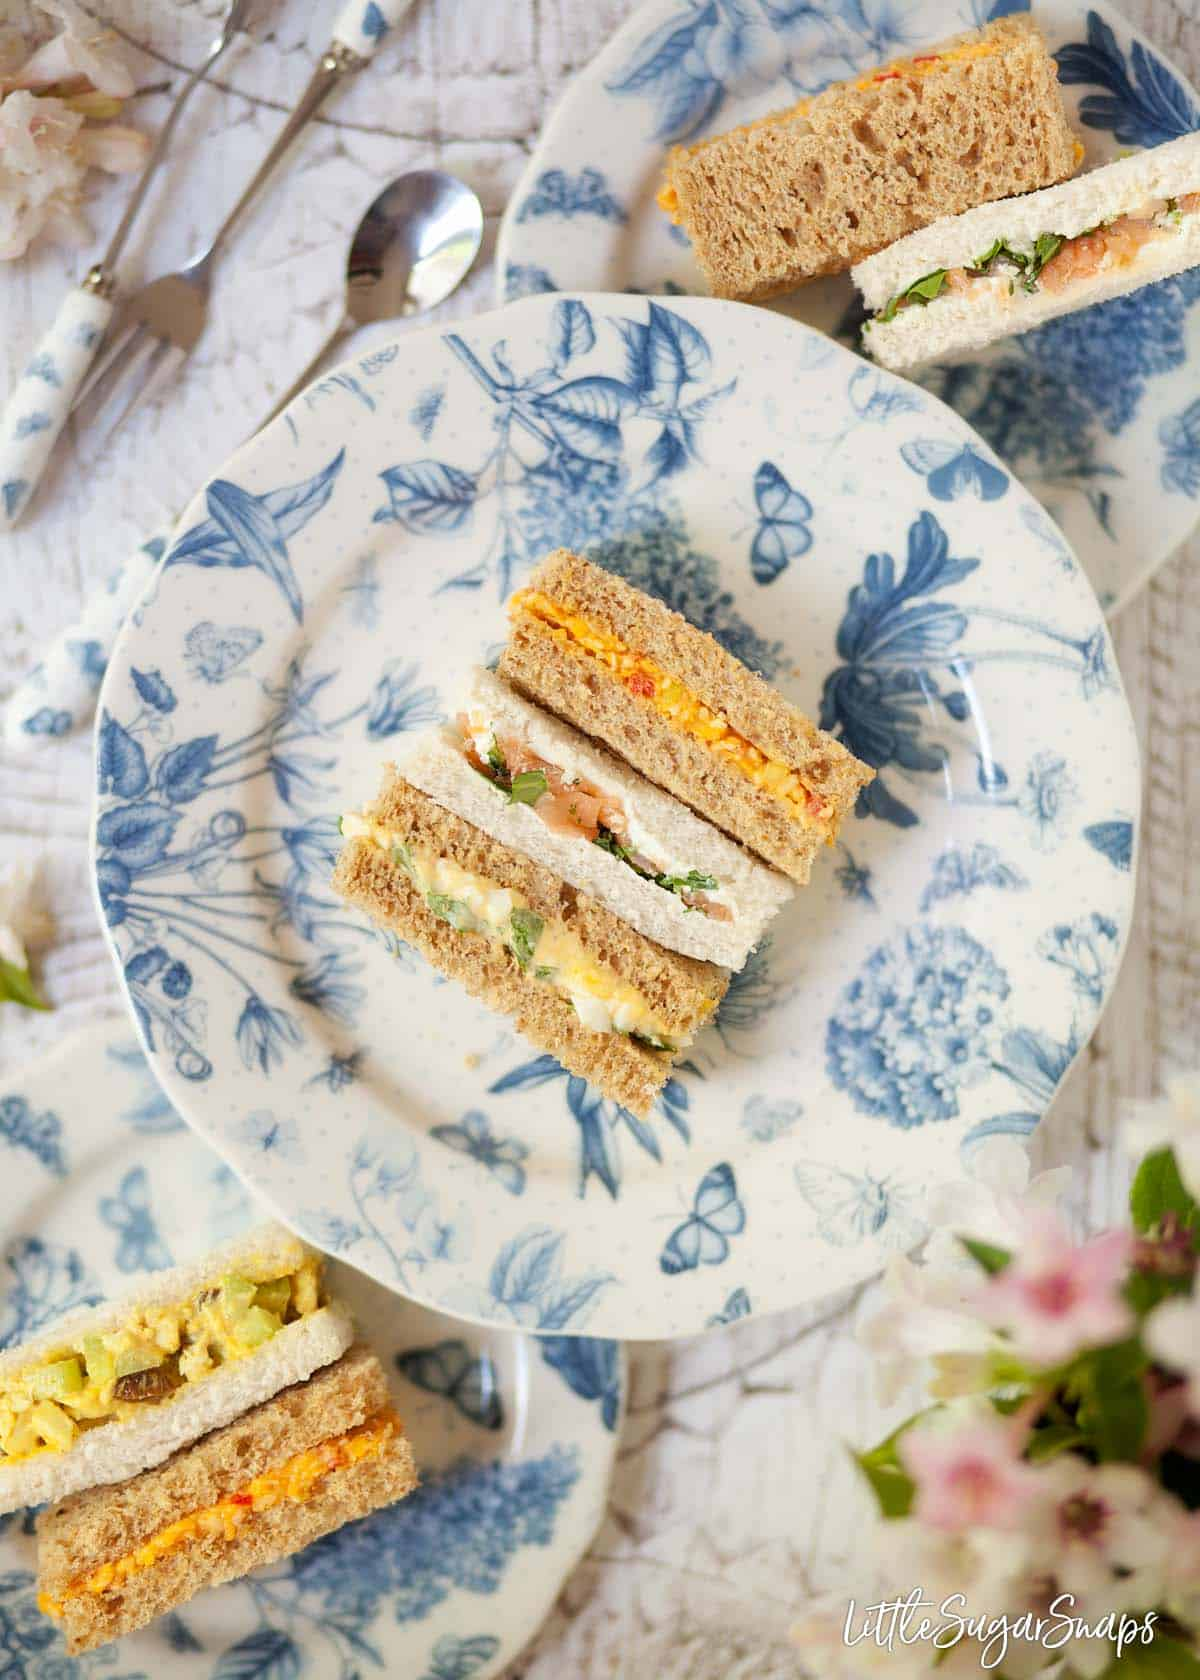 Mixed afternoon tea sandwiches served on blue and white crockery.